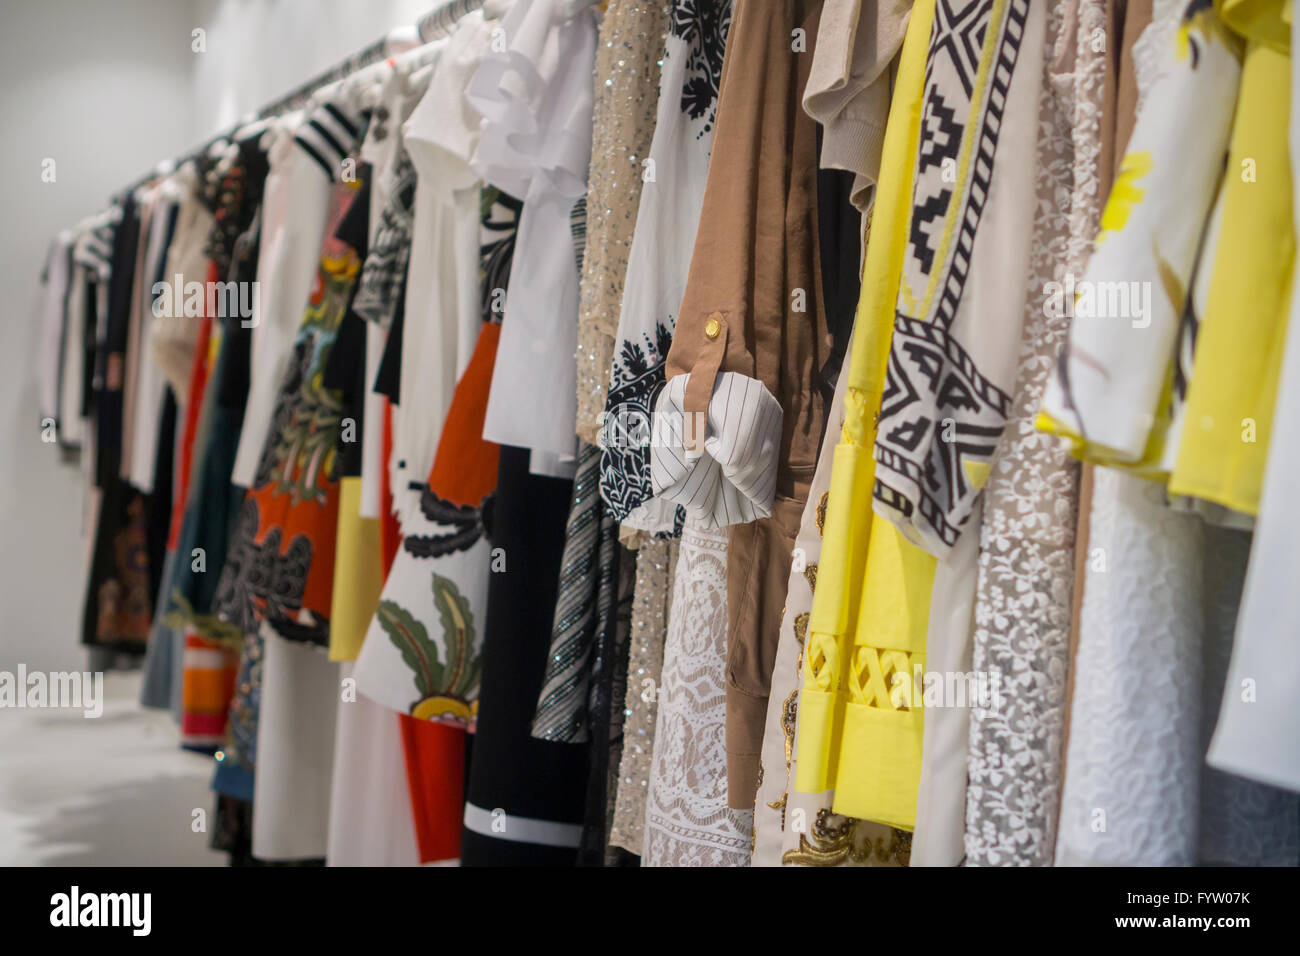 b689765e0f34 Designer clothing on sale in a store on Madison Avenue in New York on  Thursday